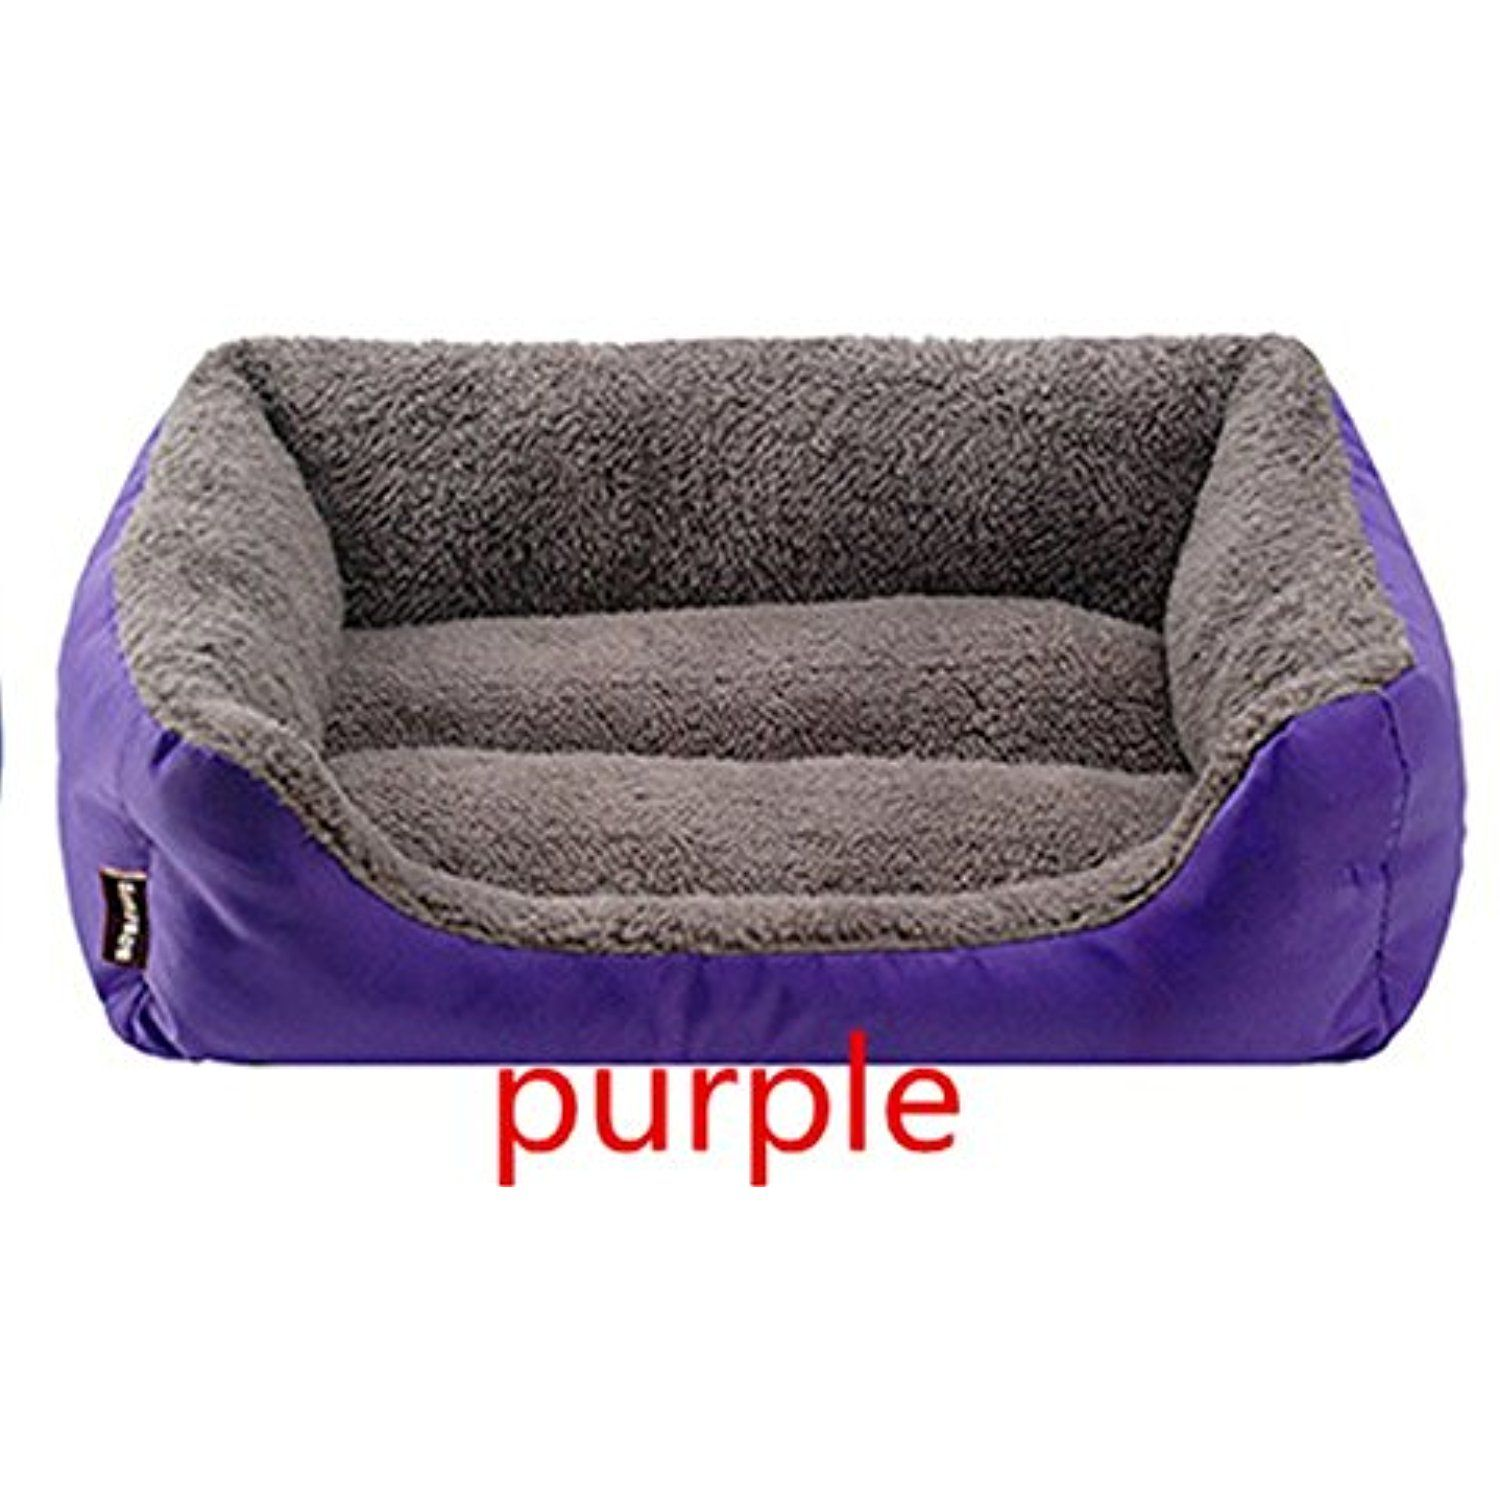 Soft Cloth Fabric Dog Home House Sofa Pet Bed Pet Dog Cat Kennel Furniture Dogs Indoor Sleeping Kennel Doghouse Warm Pet Pet Sofa Bed Dog Furniture Dog Houses